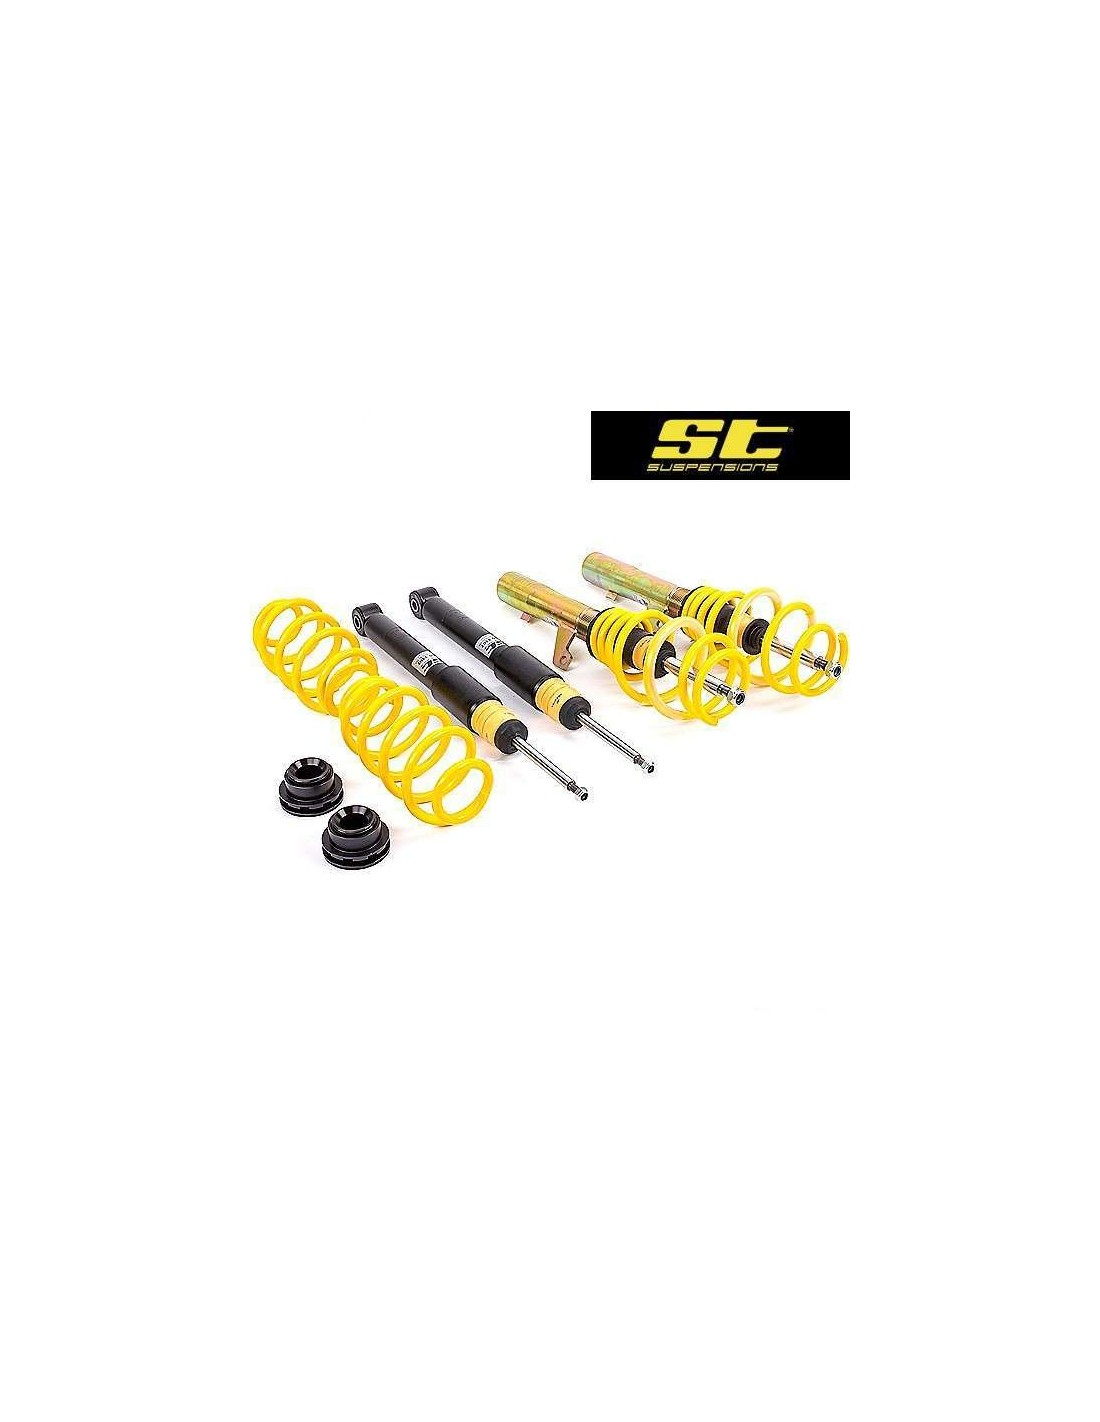 kit combin s filet s st suspensions st x volkswagen golf 4. Black Bedroom Furniture Sets. Home Design Ideas